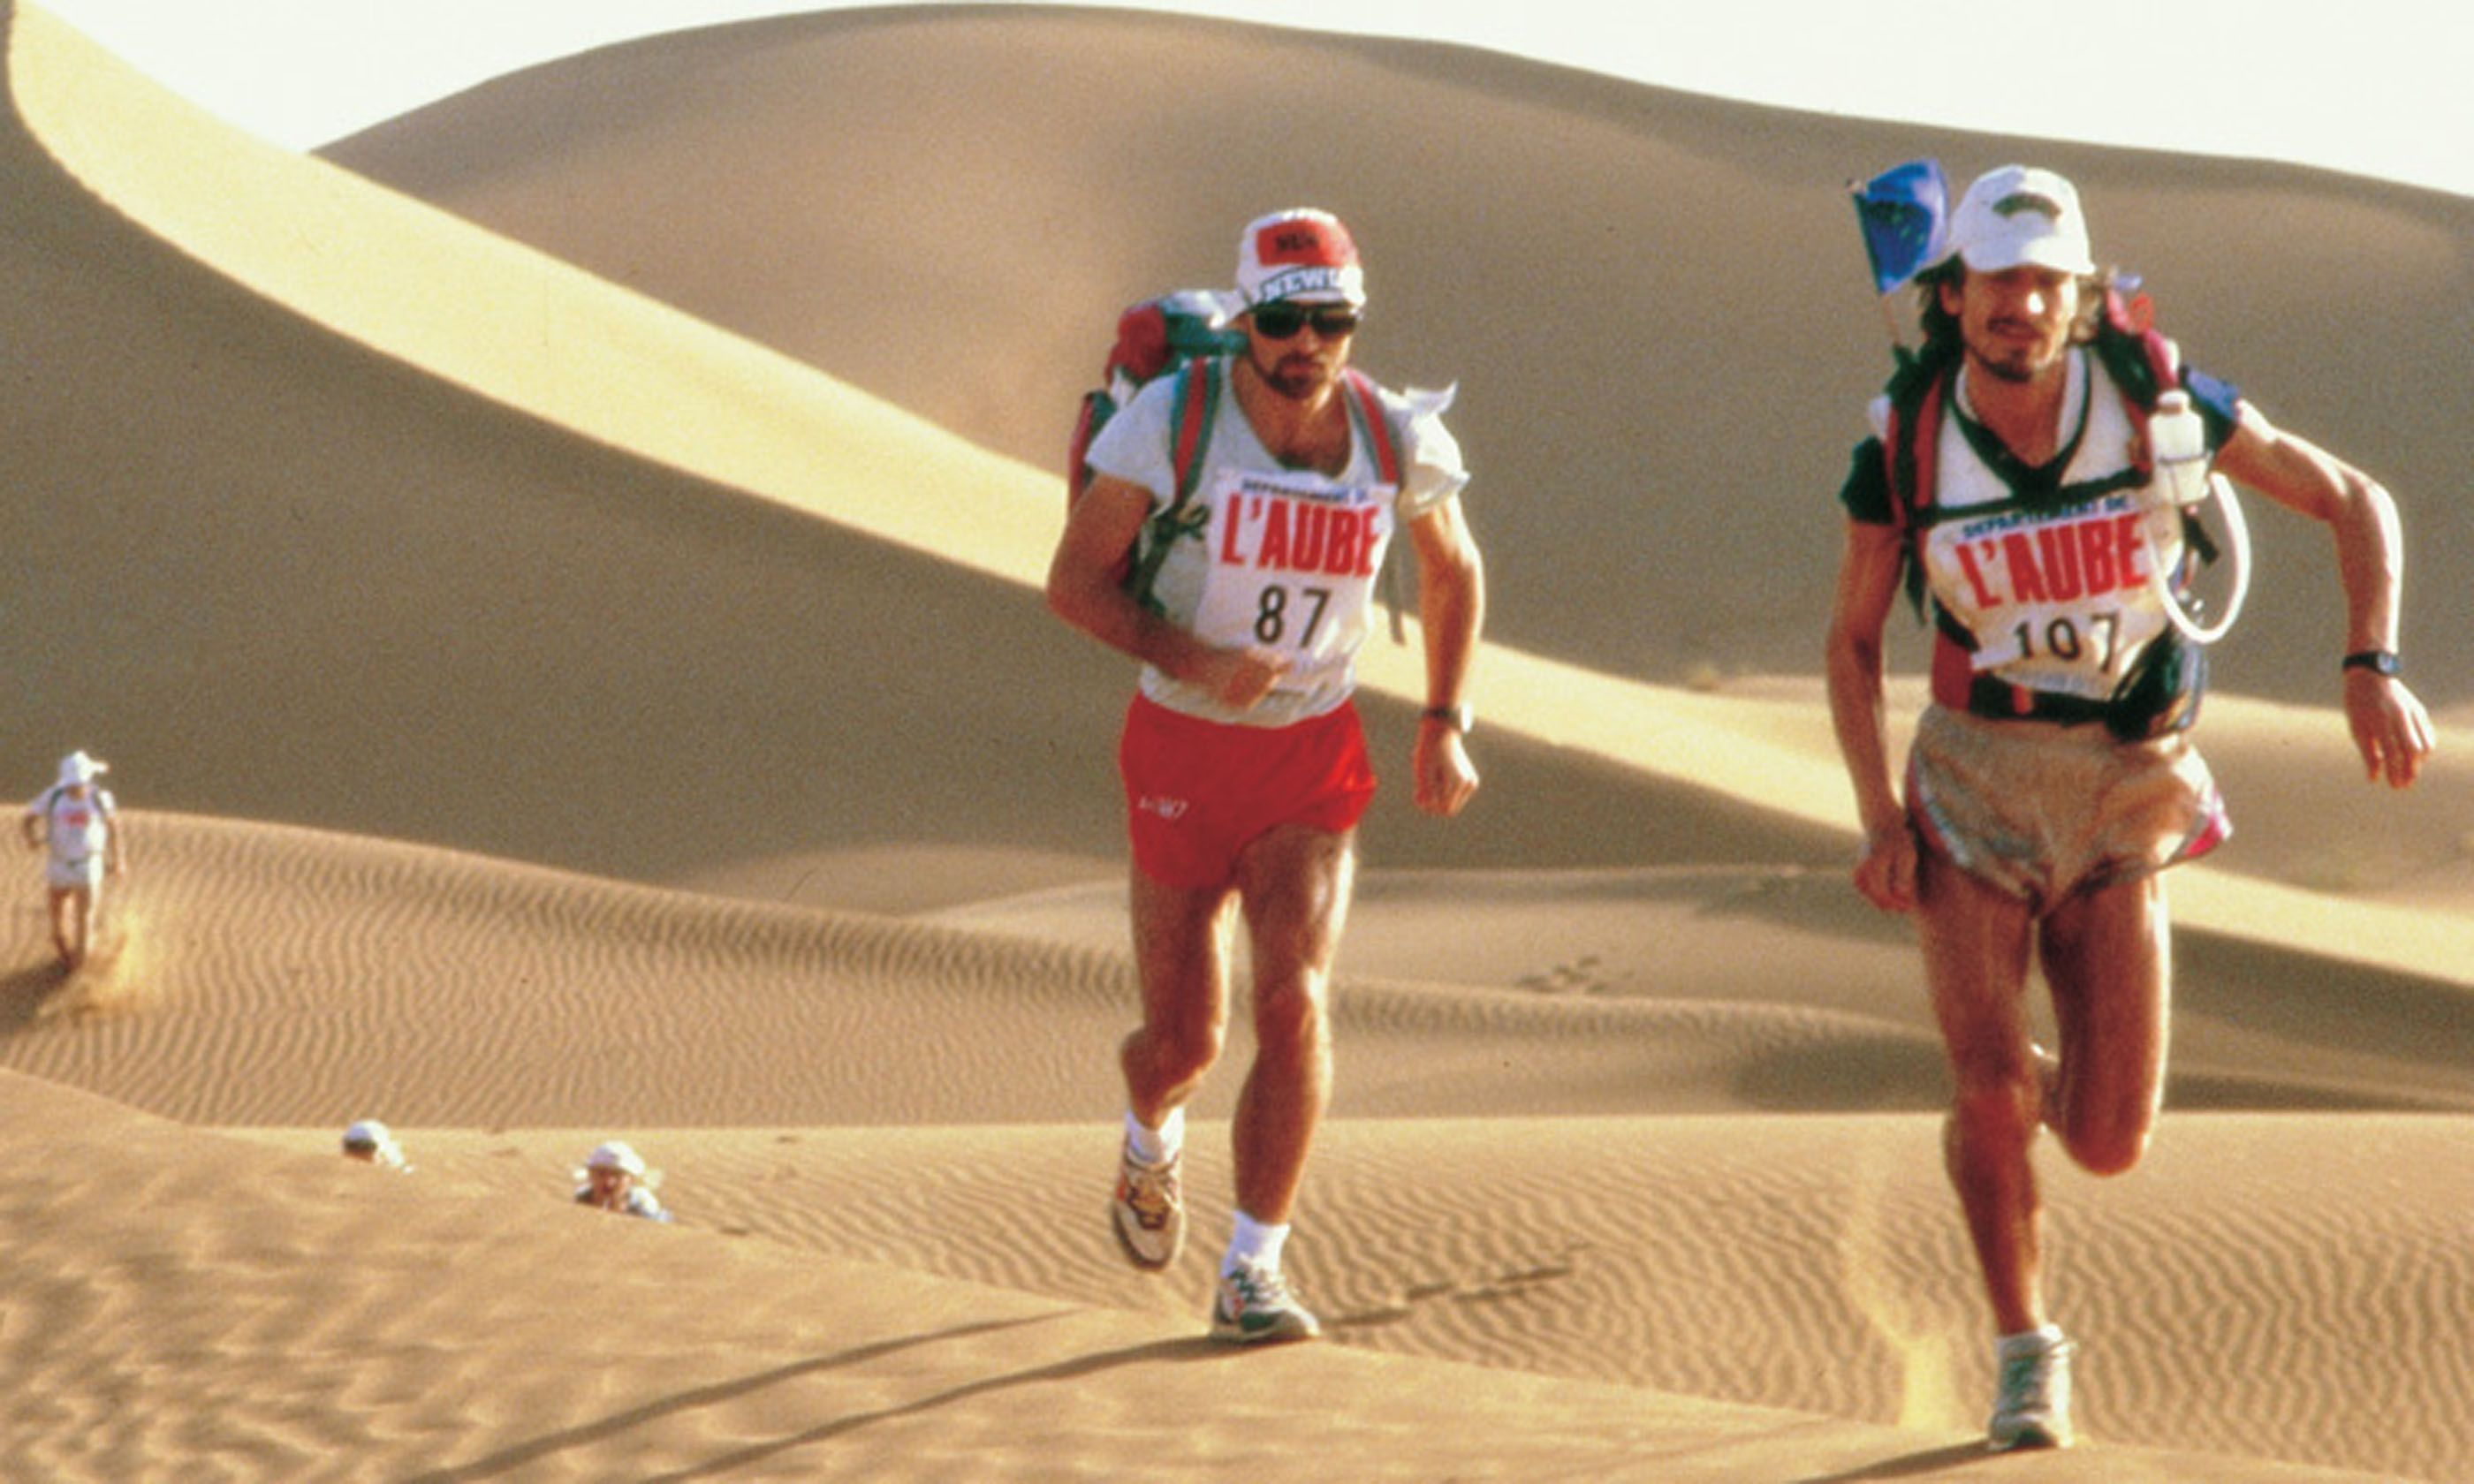 Running through the dunes (marathondessables.com)